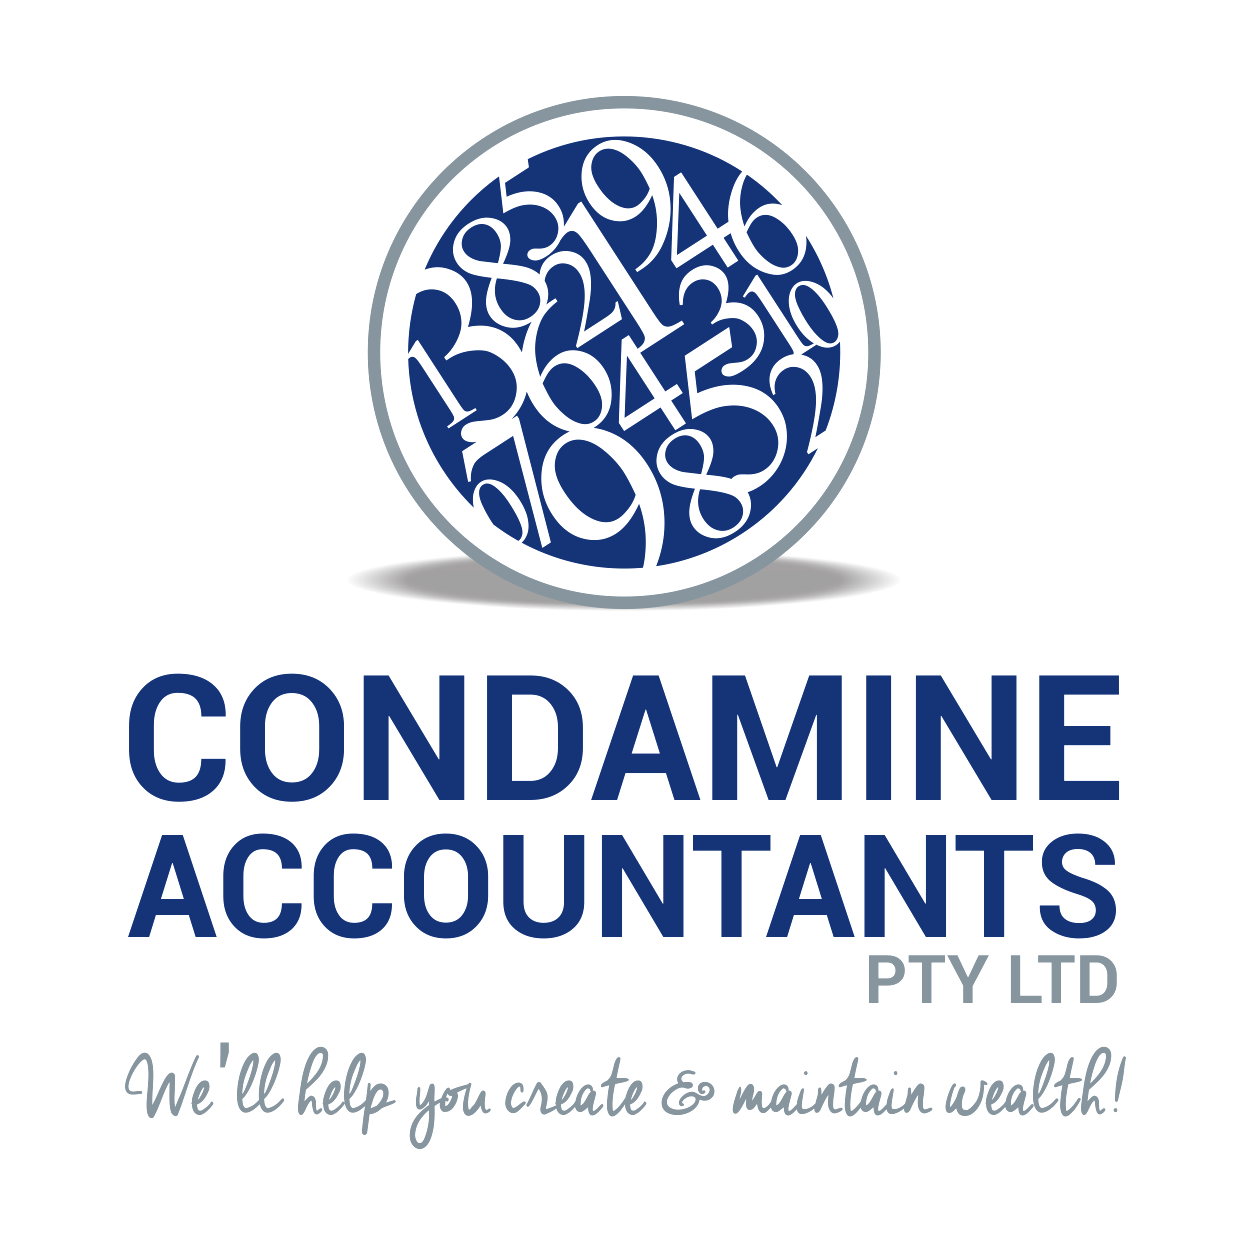 Condamine Accountants,  Design House, Graphic Design, Print, Website Design, Web, WordPress, Development, Hosting, Business Cards, Logos, Billboards, Social Media, Facebook, Hervey Bay, Fraser Coast, Australia, Sunshine Coast, Noosa, Gympie, Nambour, Brisbane, Maryborough, Queensland, Jeanette Maynes,